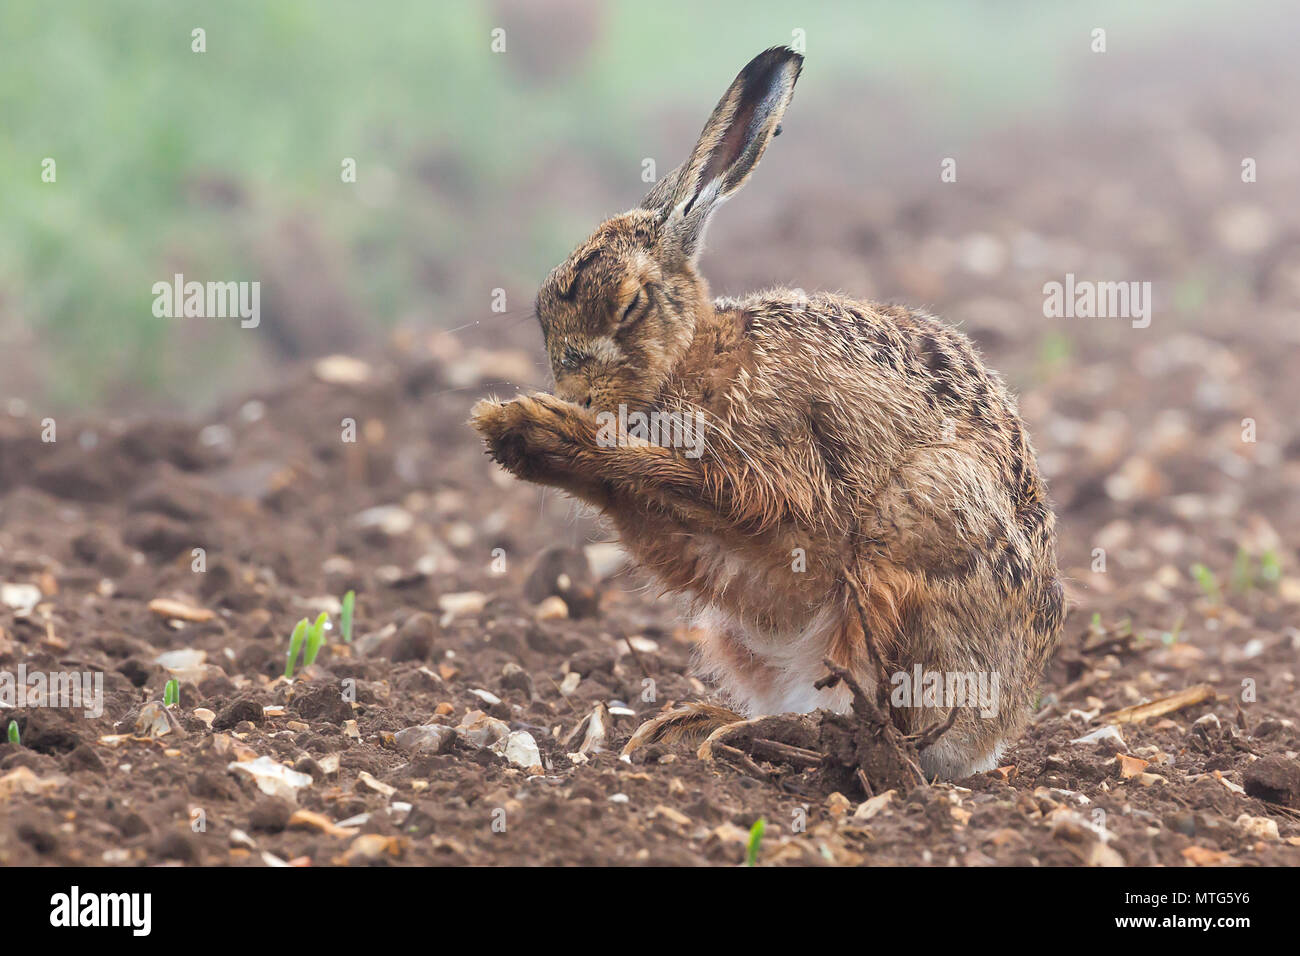 Wild brown hare with eyes closed, having a morning wash in a field with crops just starting to grow. Natures bare farmland soil with a furry animal cl - Stock Image